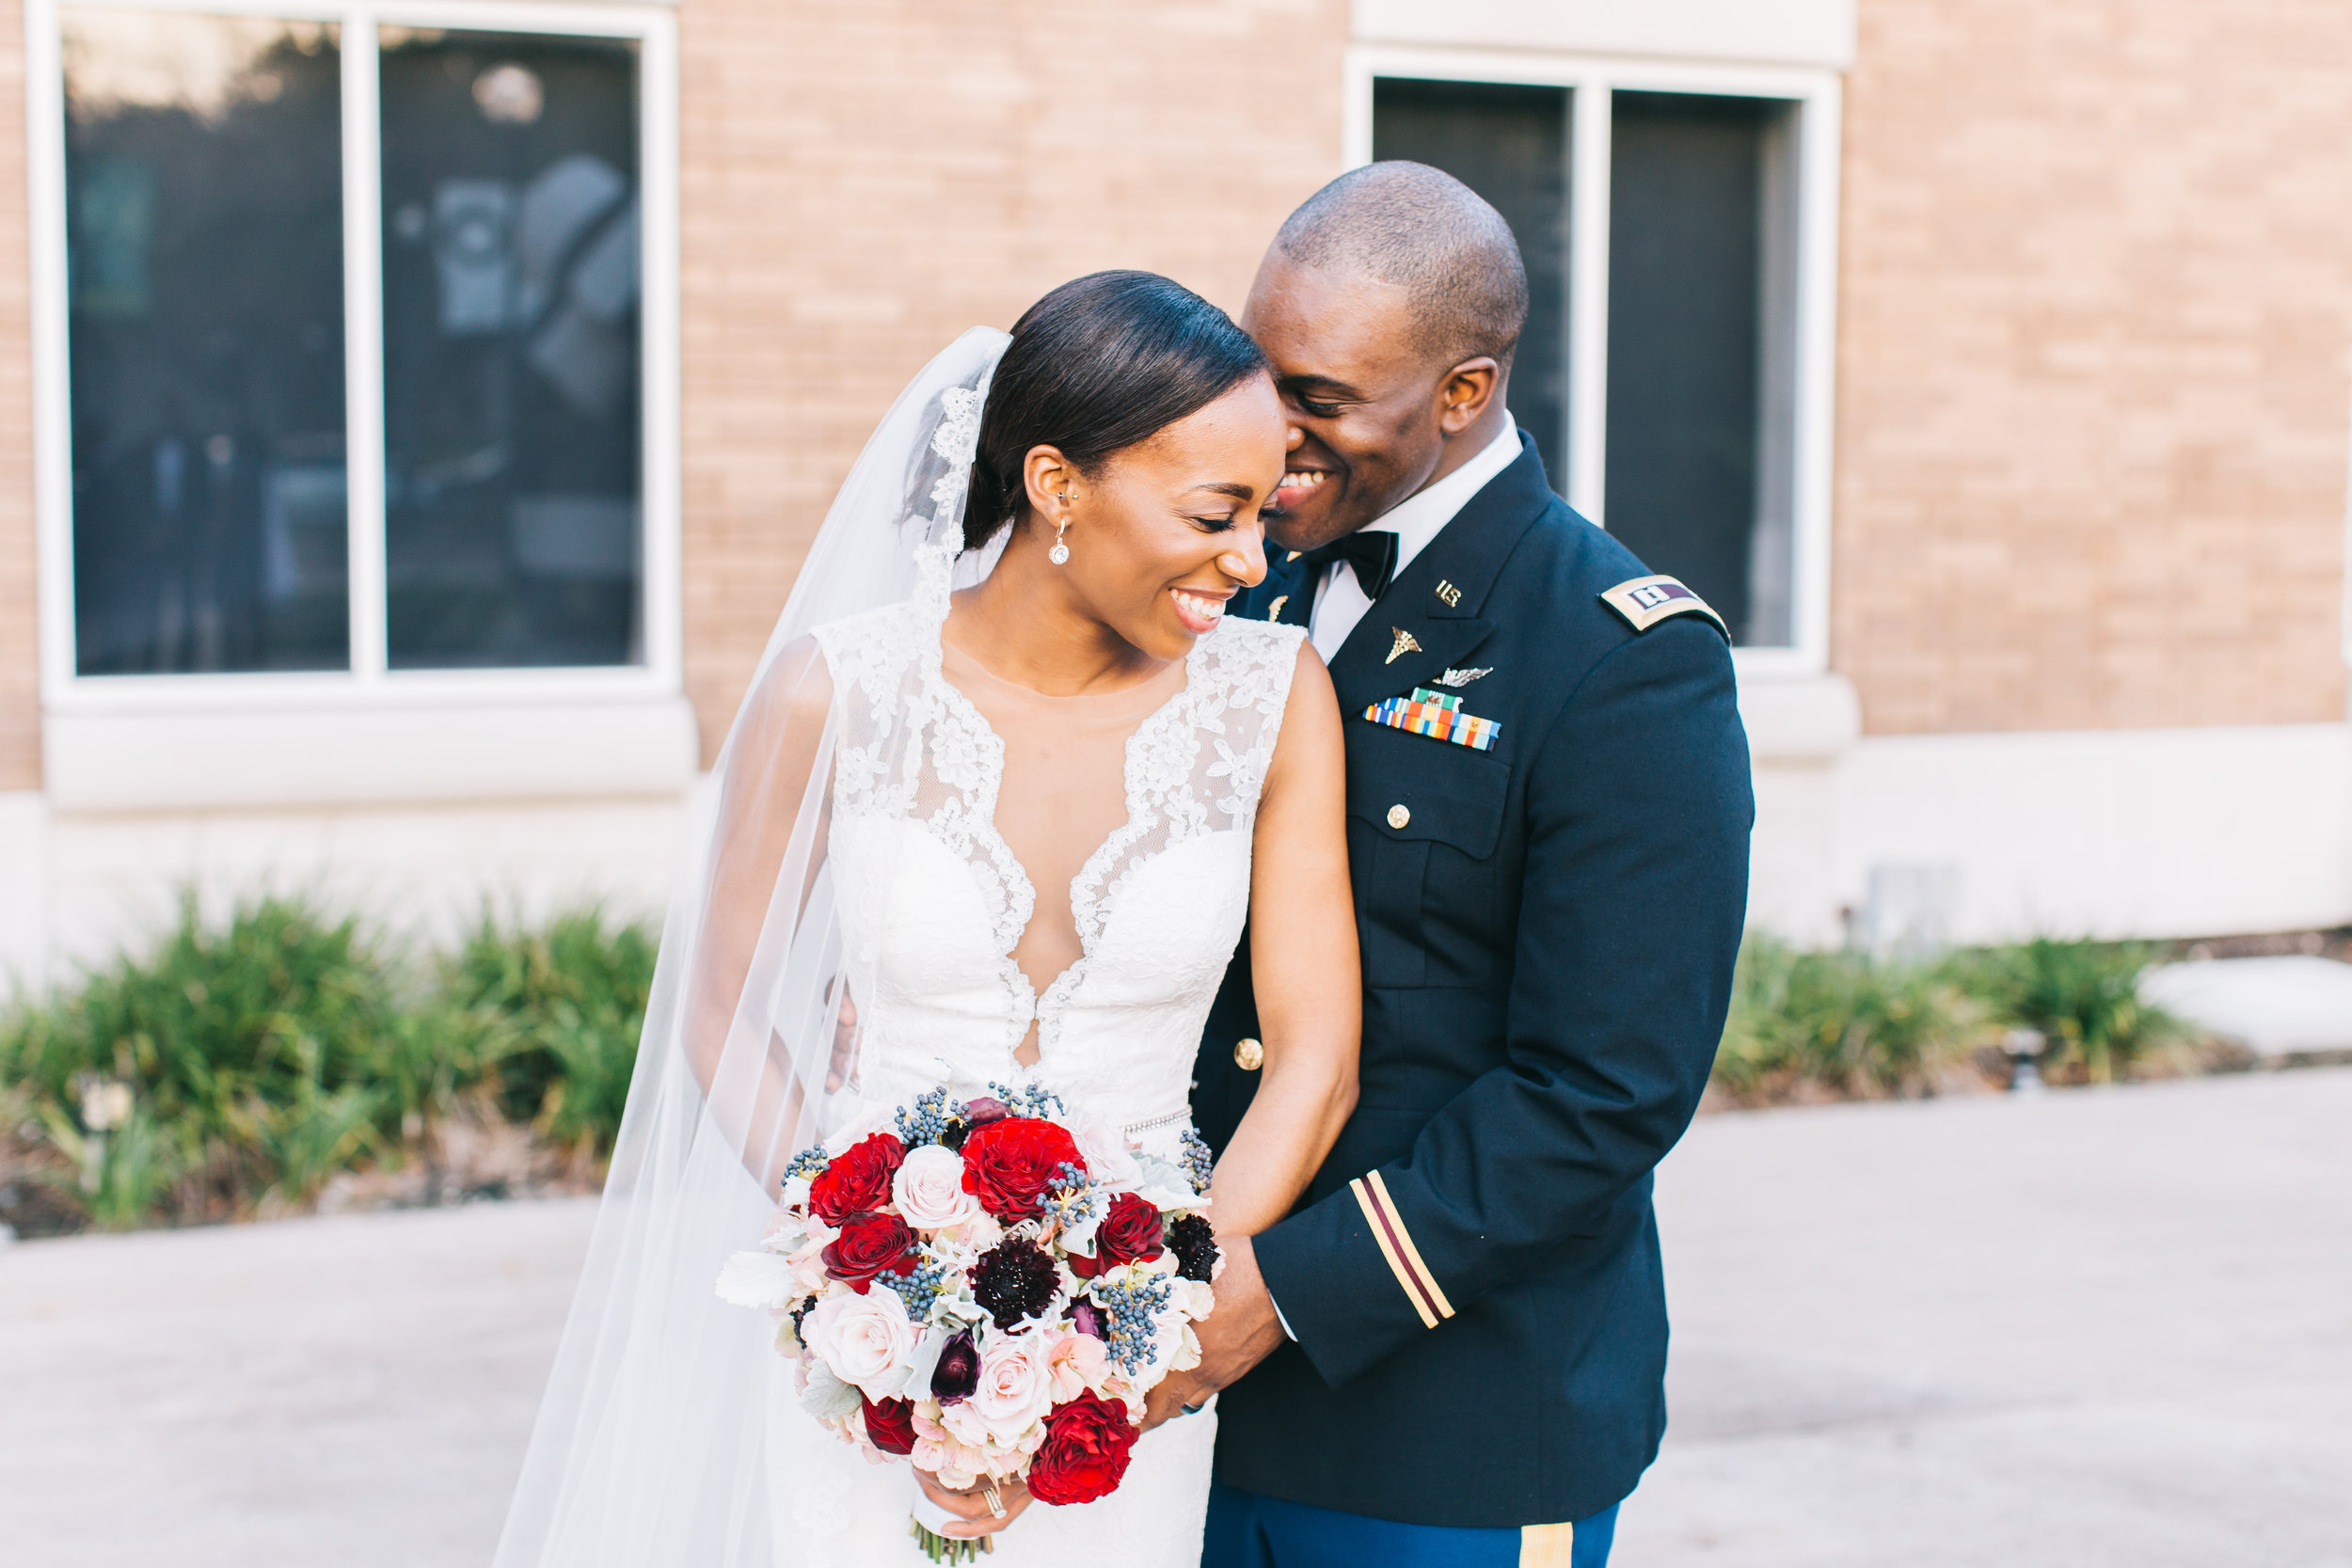 Bluegrass Chic - Army Wedding Bride and Groom